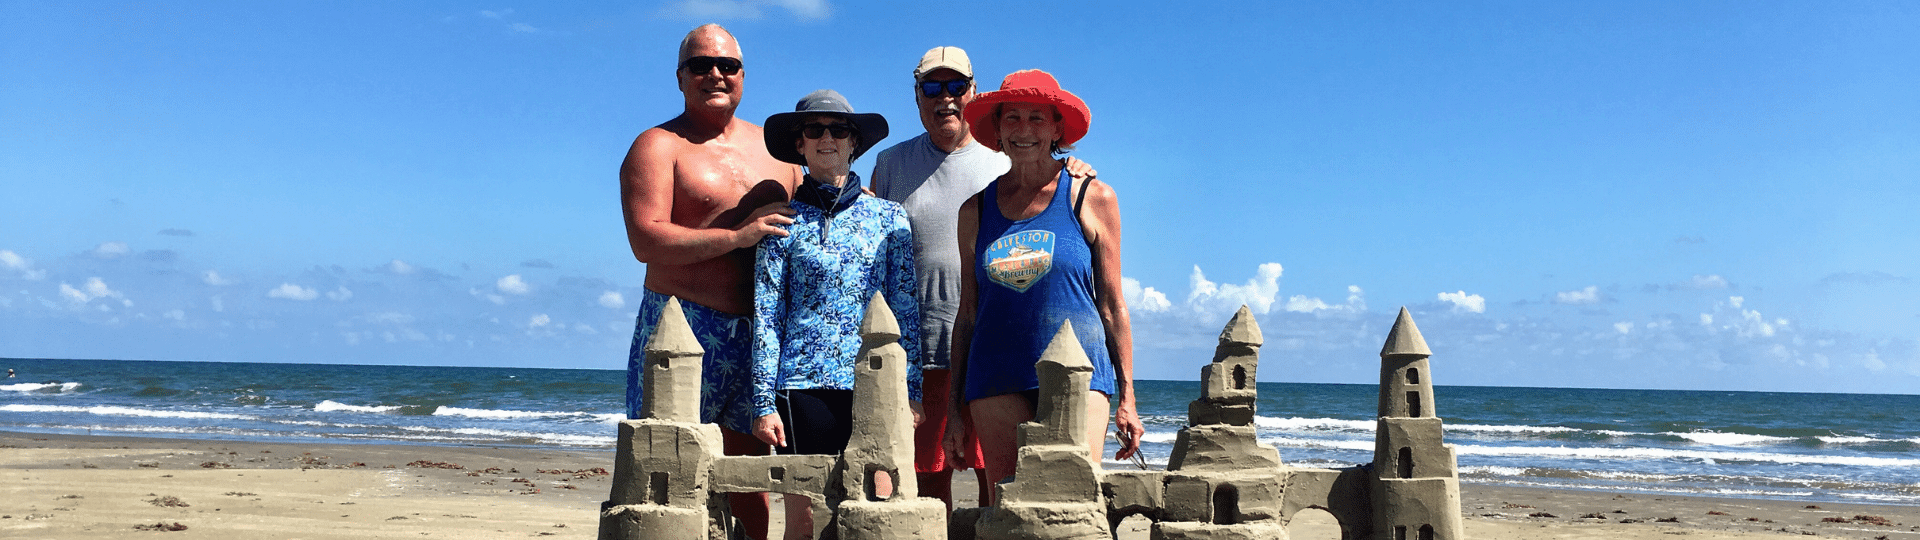 Family standing in front of sand castle in Galveston tx